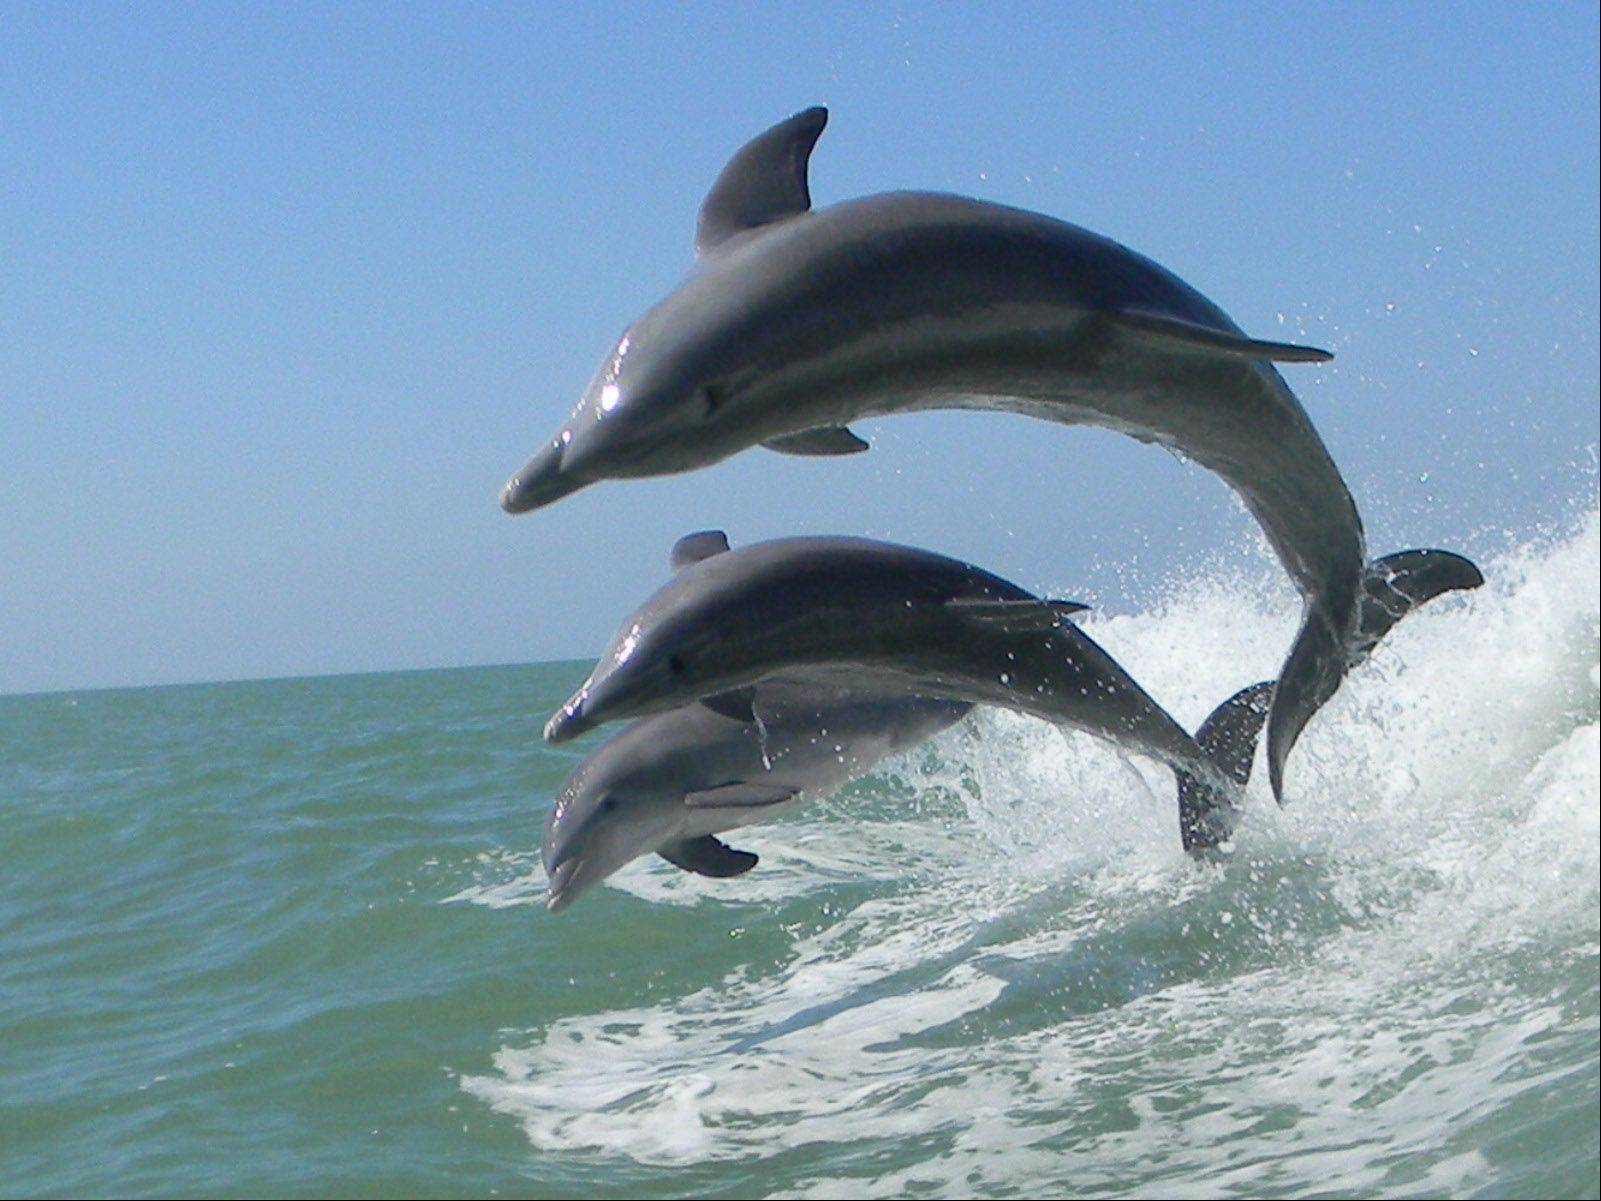 Dolphins play in the wake of a boat off the coast of Sanibel Island, Florida on February 7th.